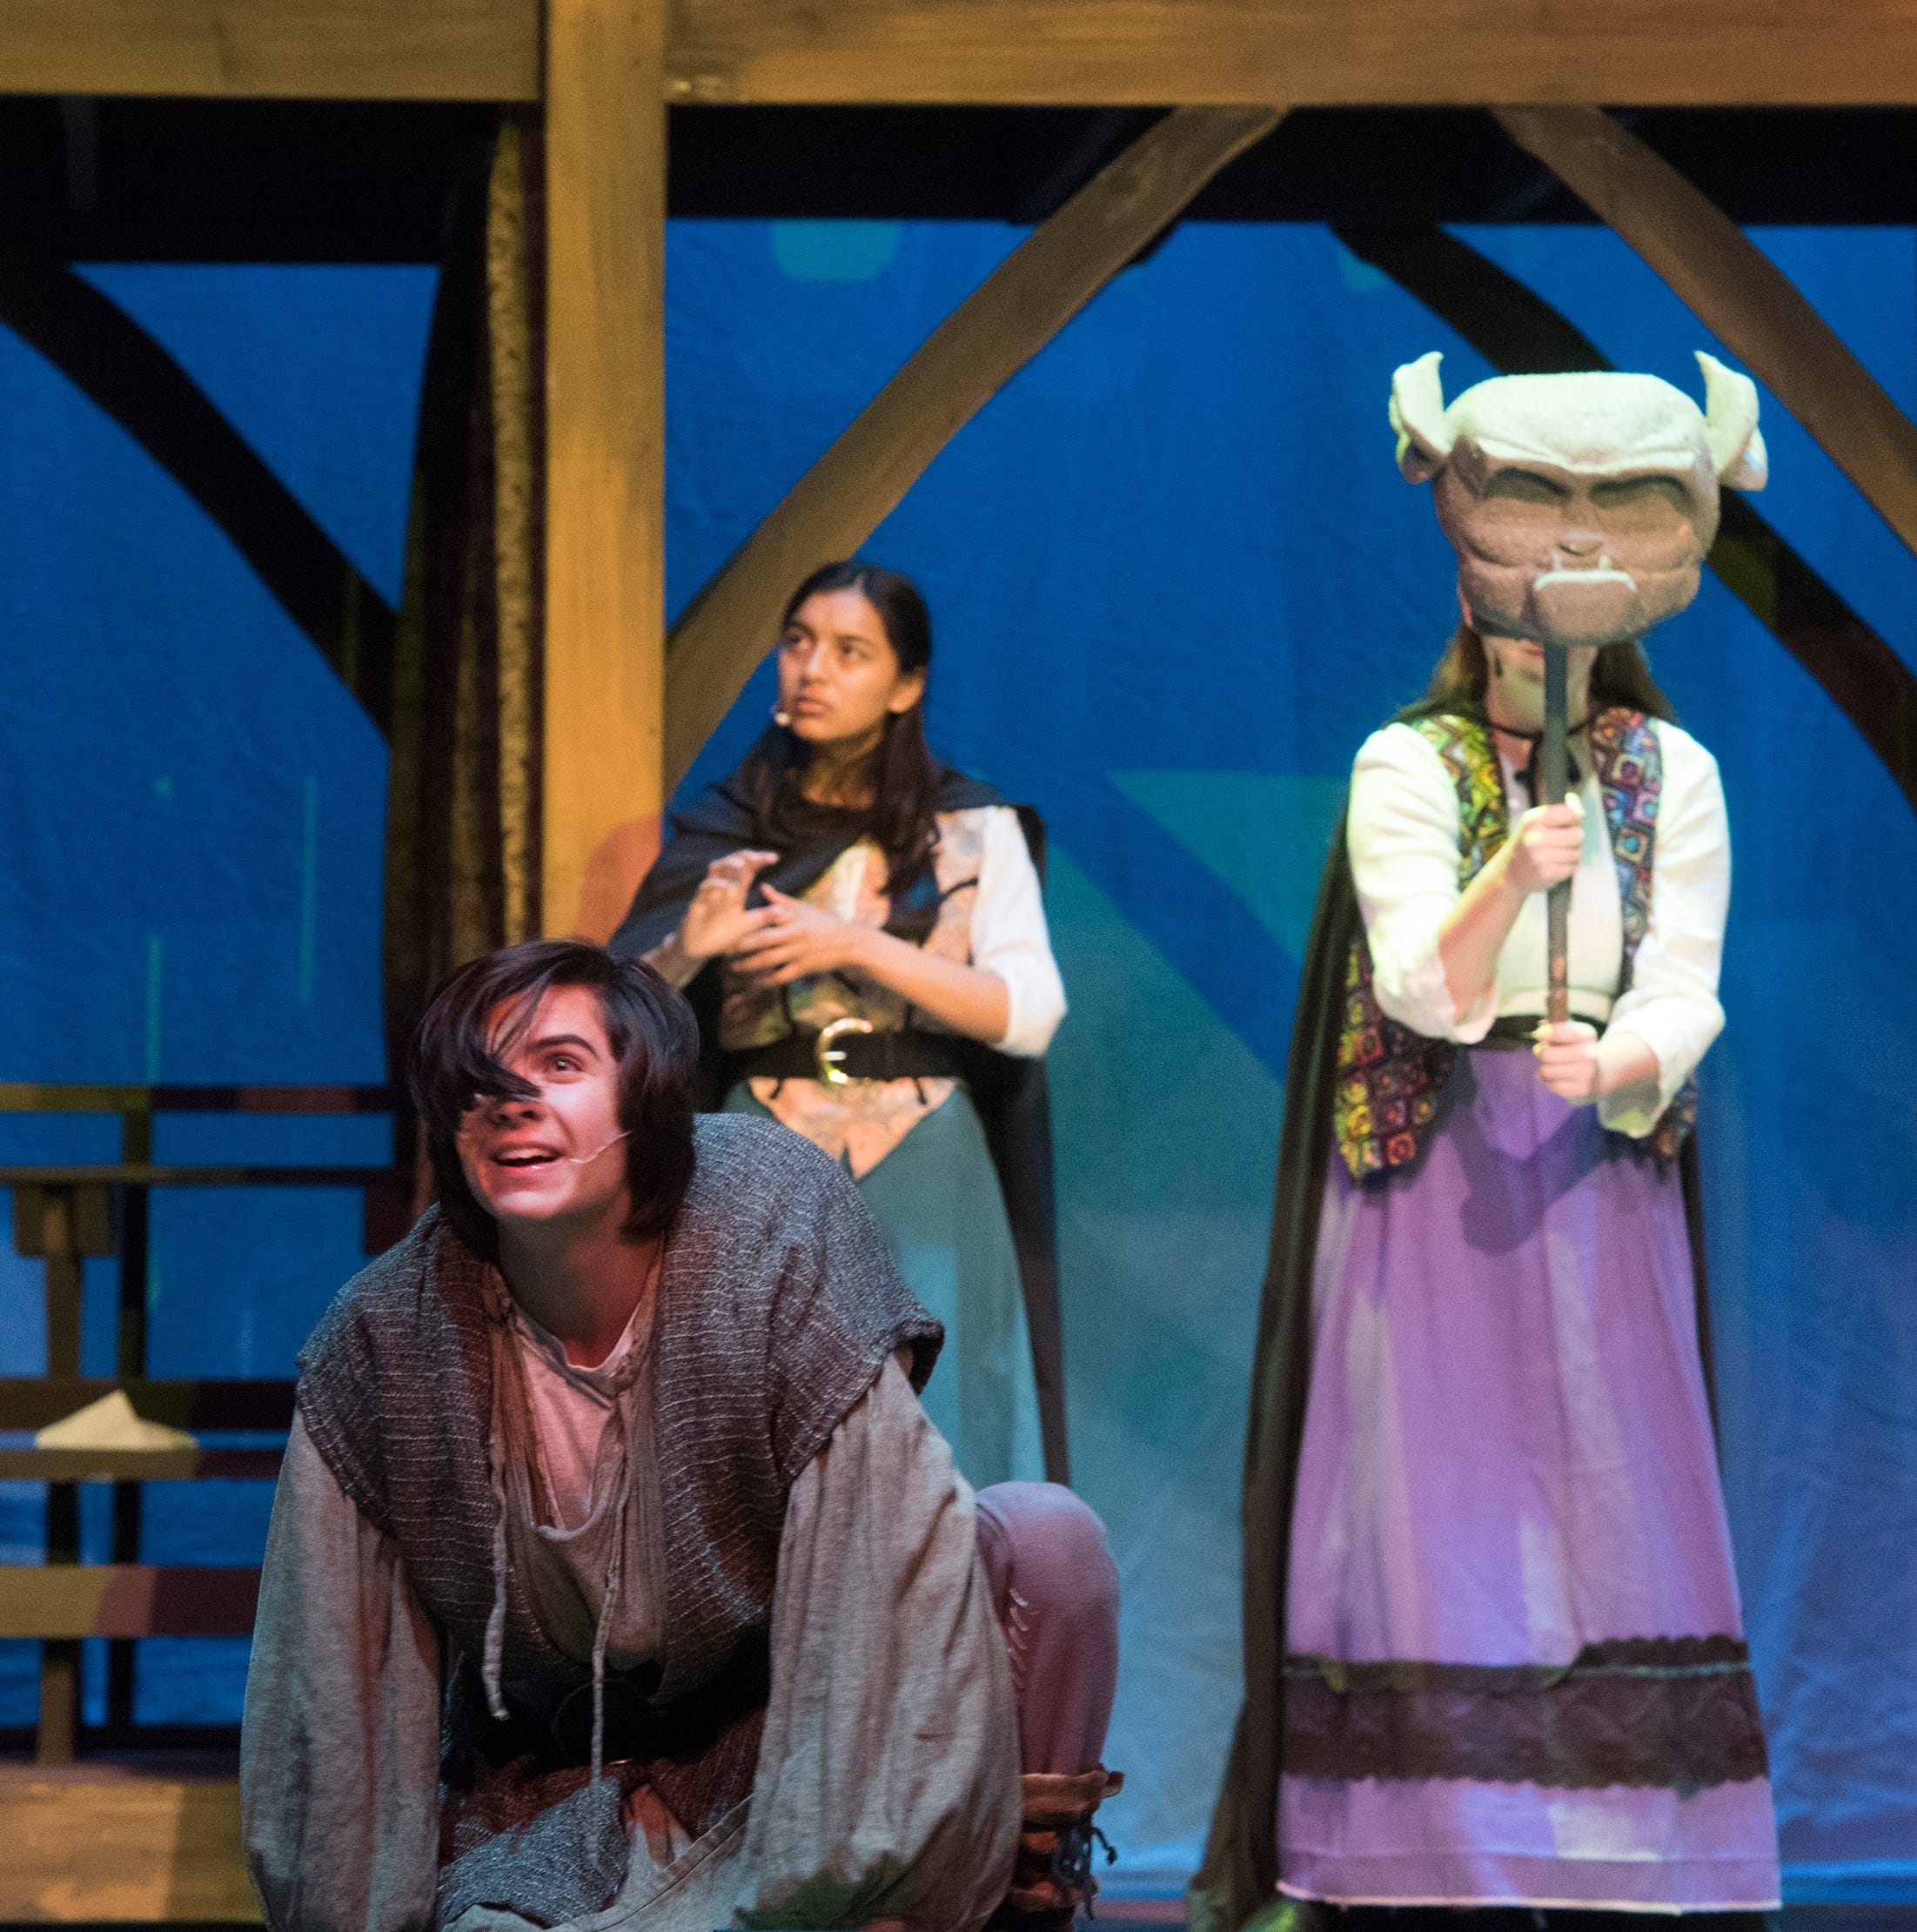 Local teen finds courage in 'Hunchback' role